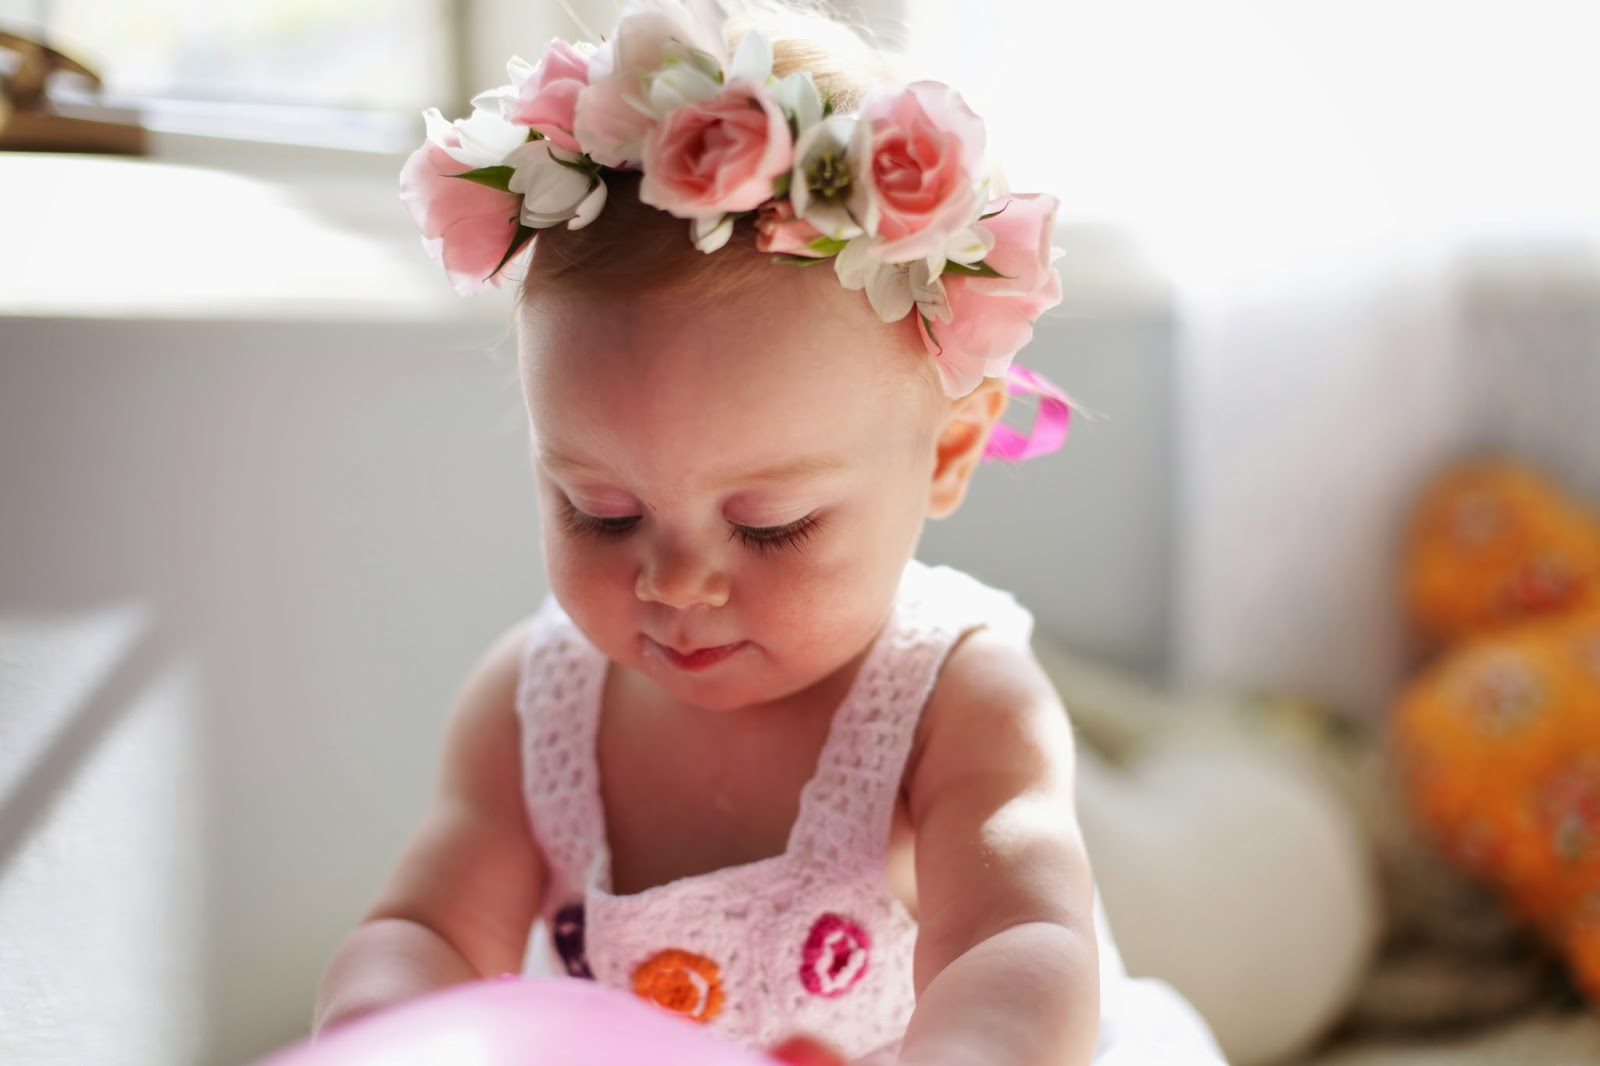 Lovelies in my life flowers in her hair this girl is almost one and this weekend we celebrated first with her very own tiny crown of fresh pink and white flowers izmirmasajfo